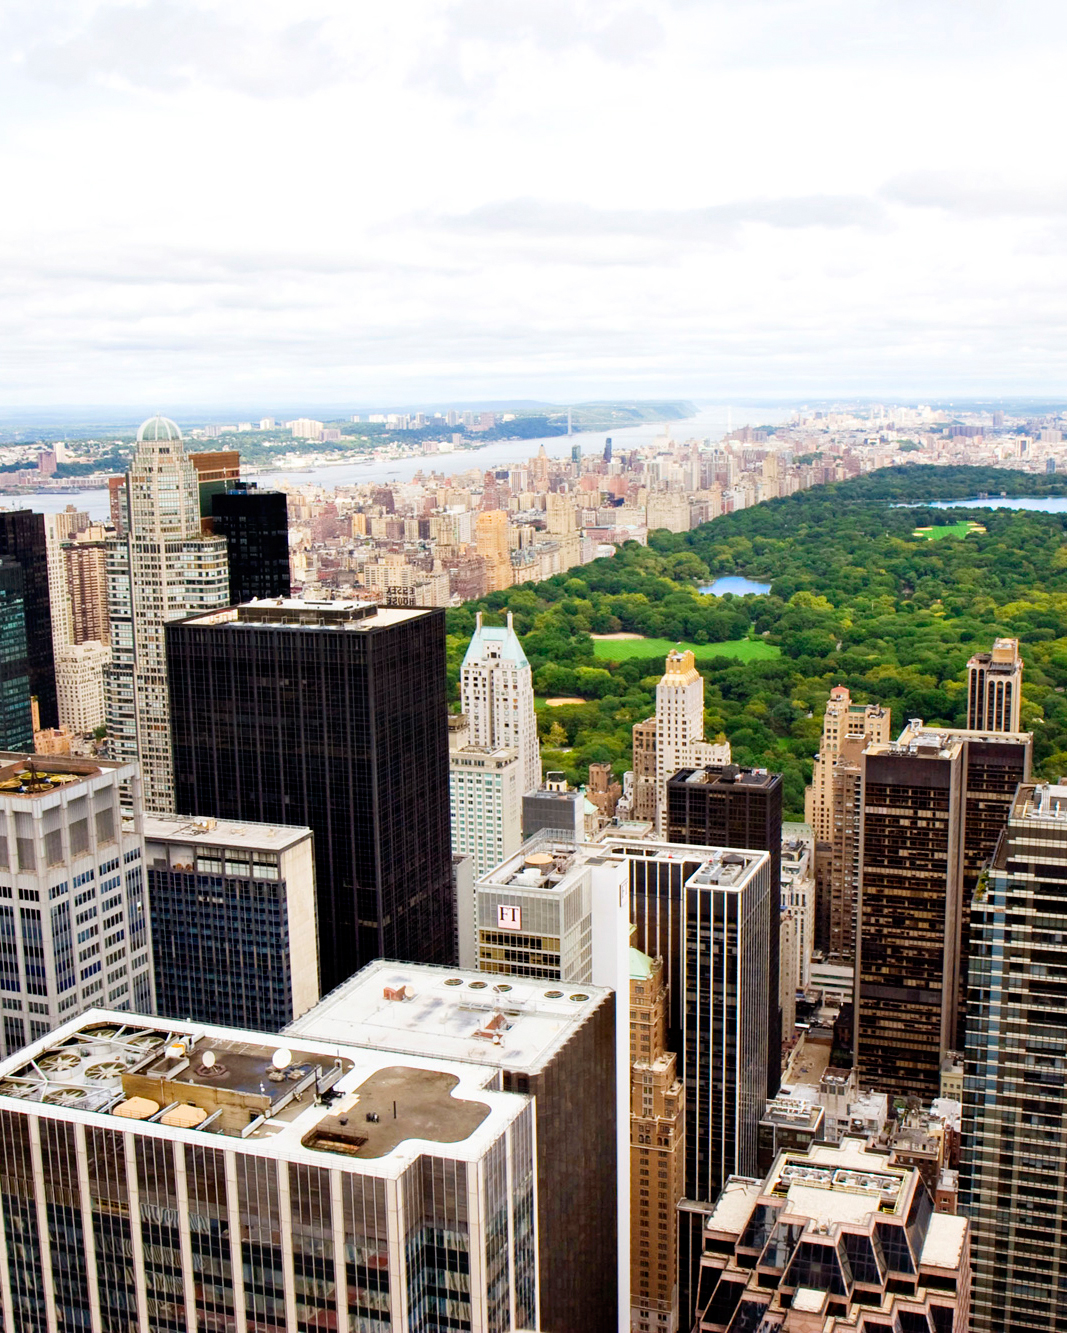 nyc-proposal-spot-top-of-the-rock-central-park-view-1114.jpg